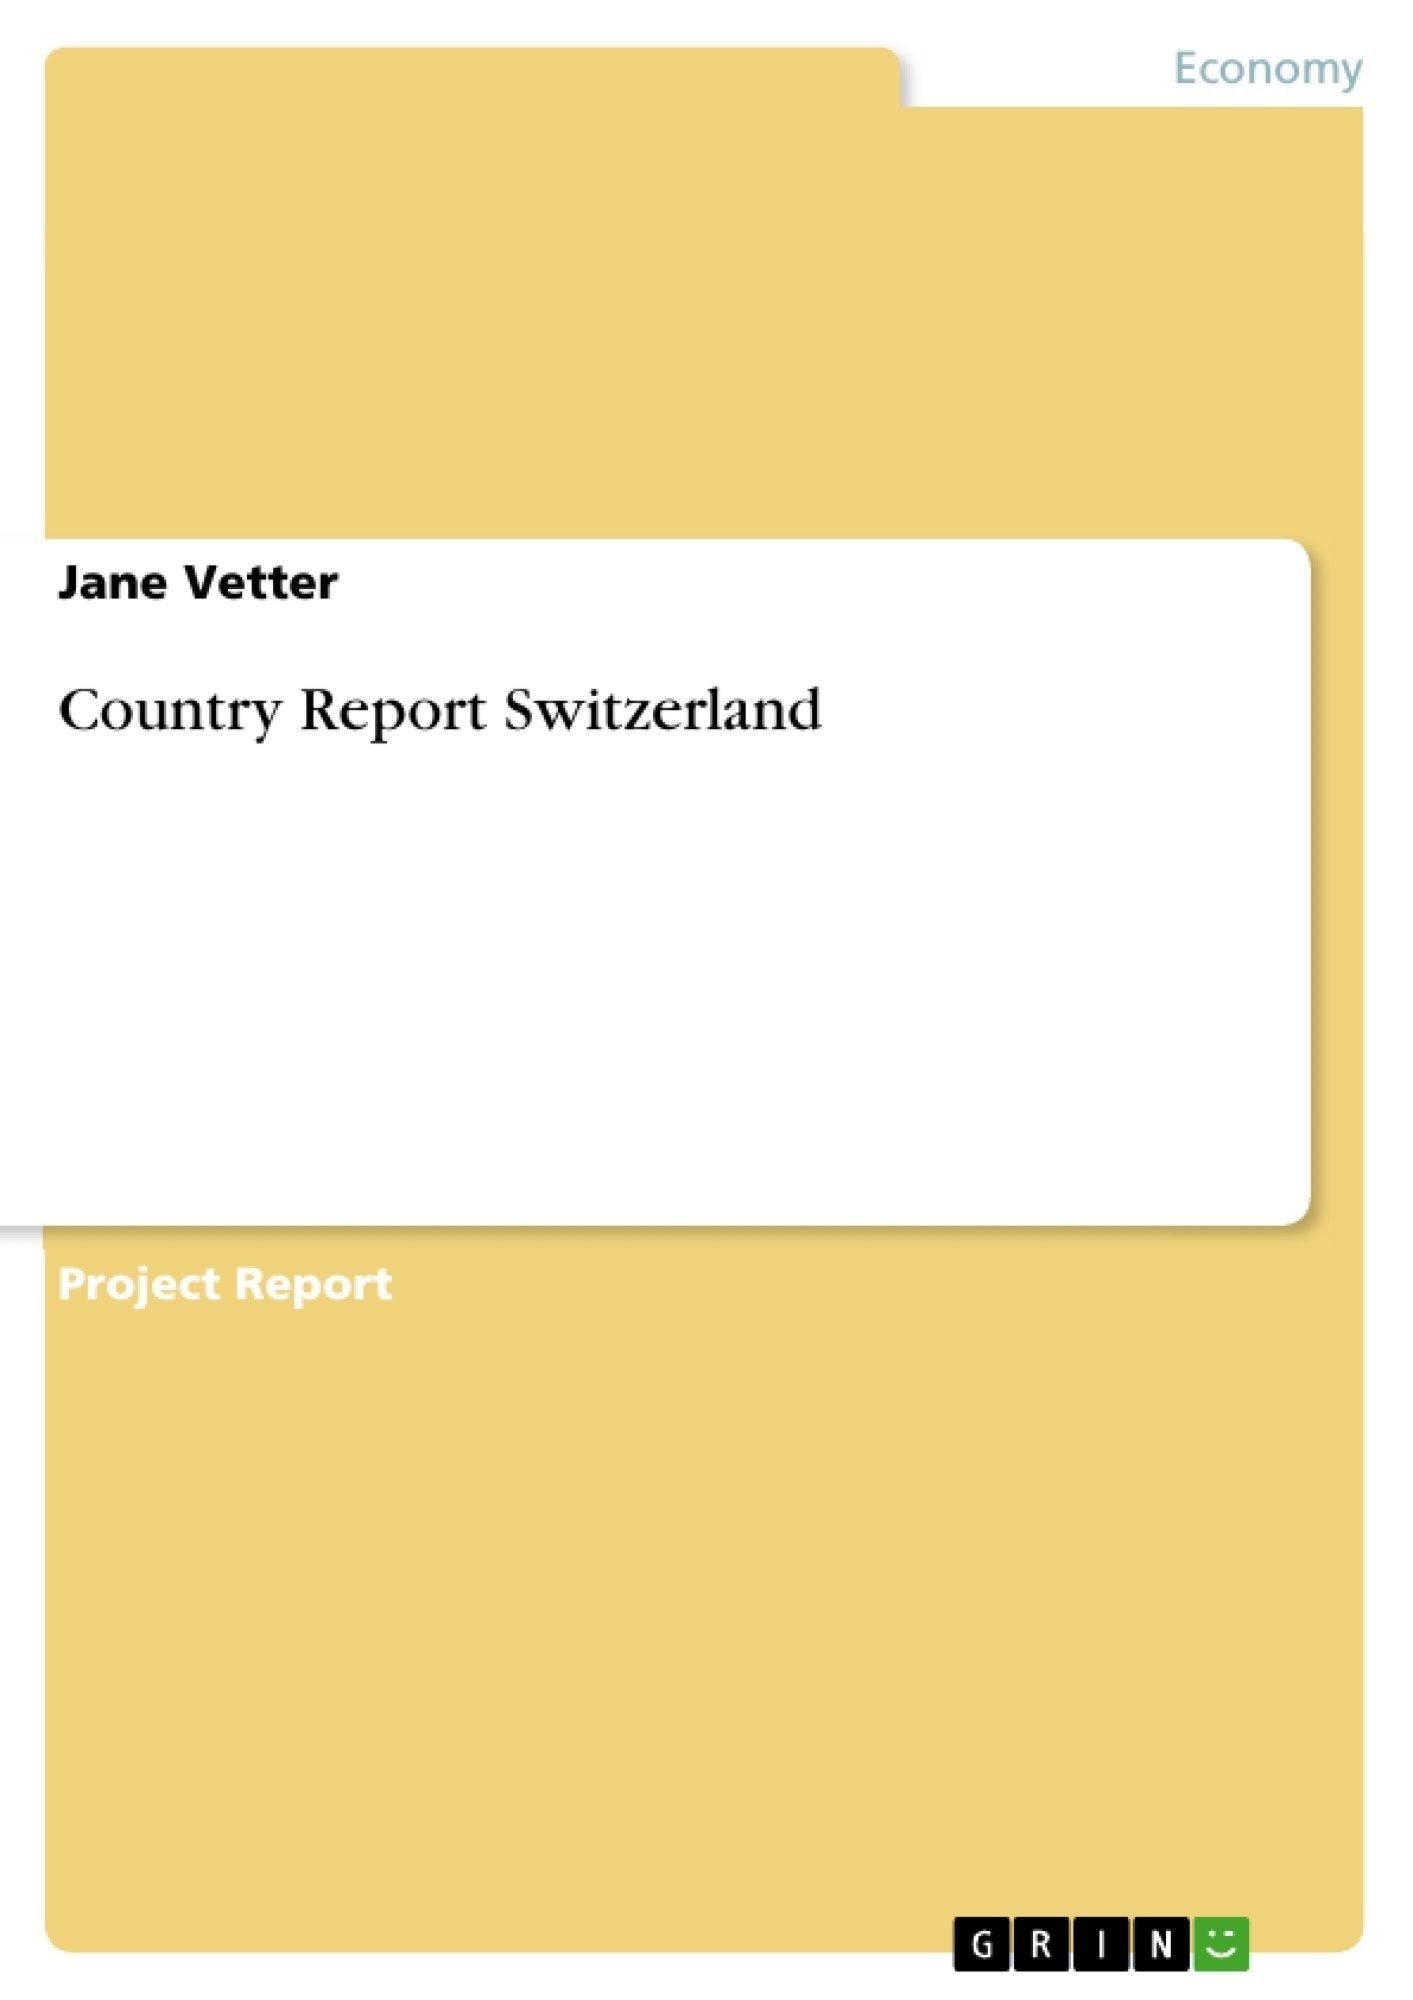 Title: Country Report Switzerland